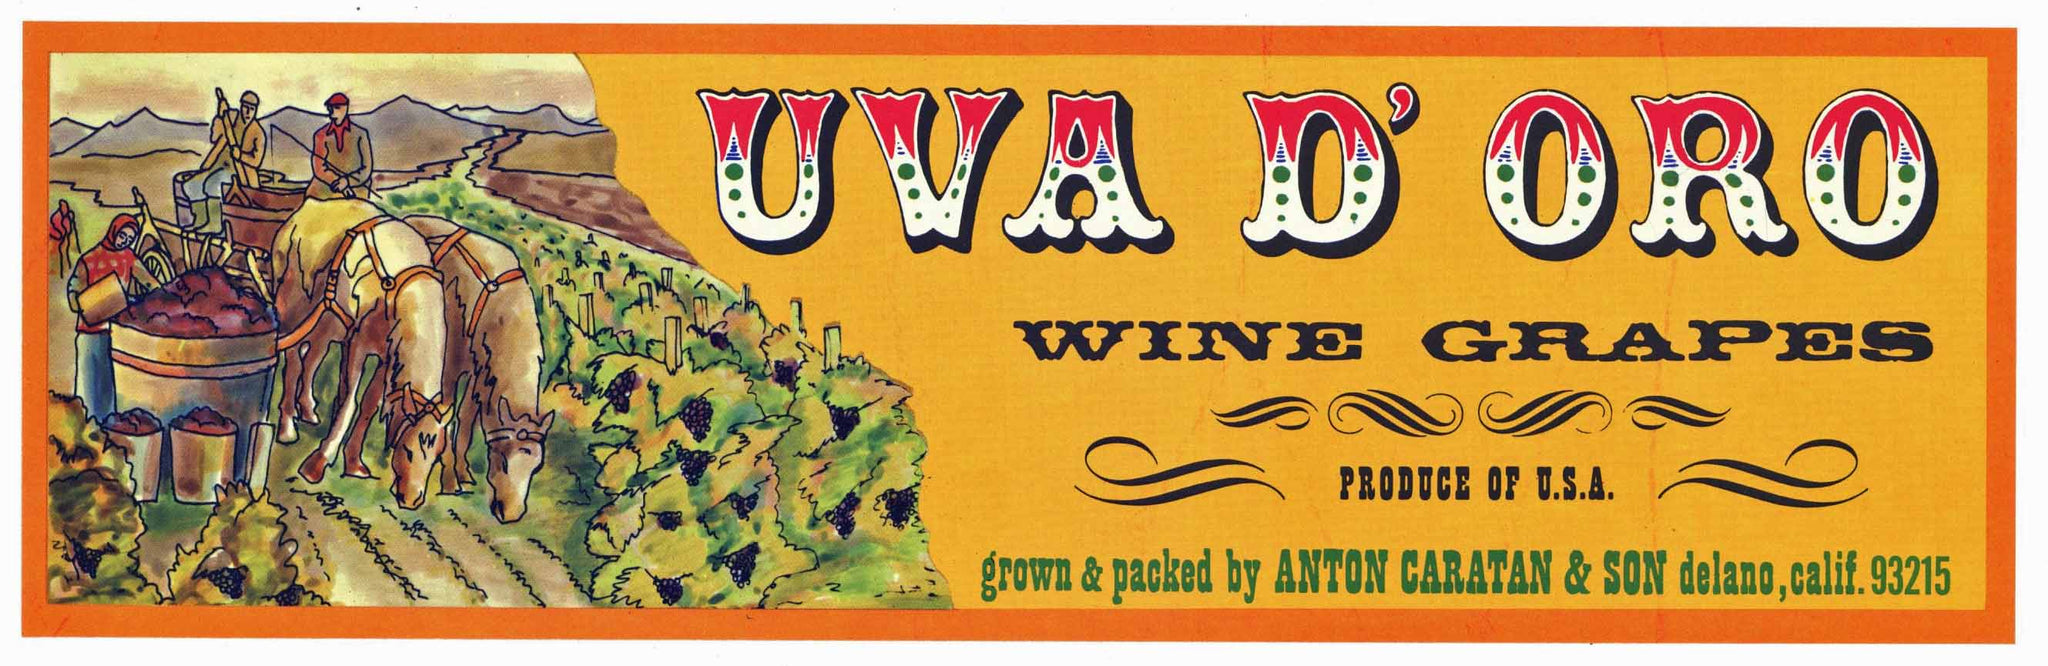 Uva D' Oro Brand Vintage Delano Grape Crate Label